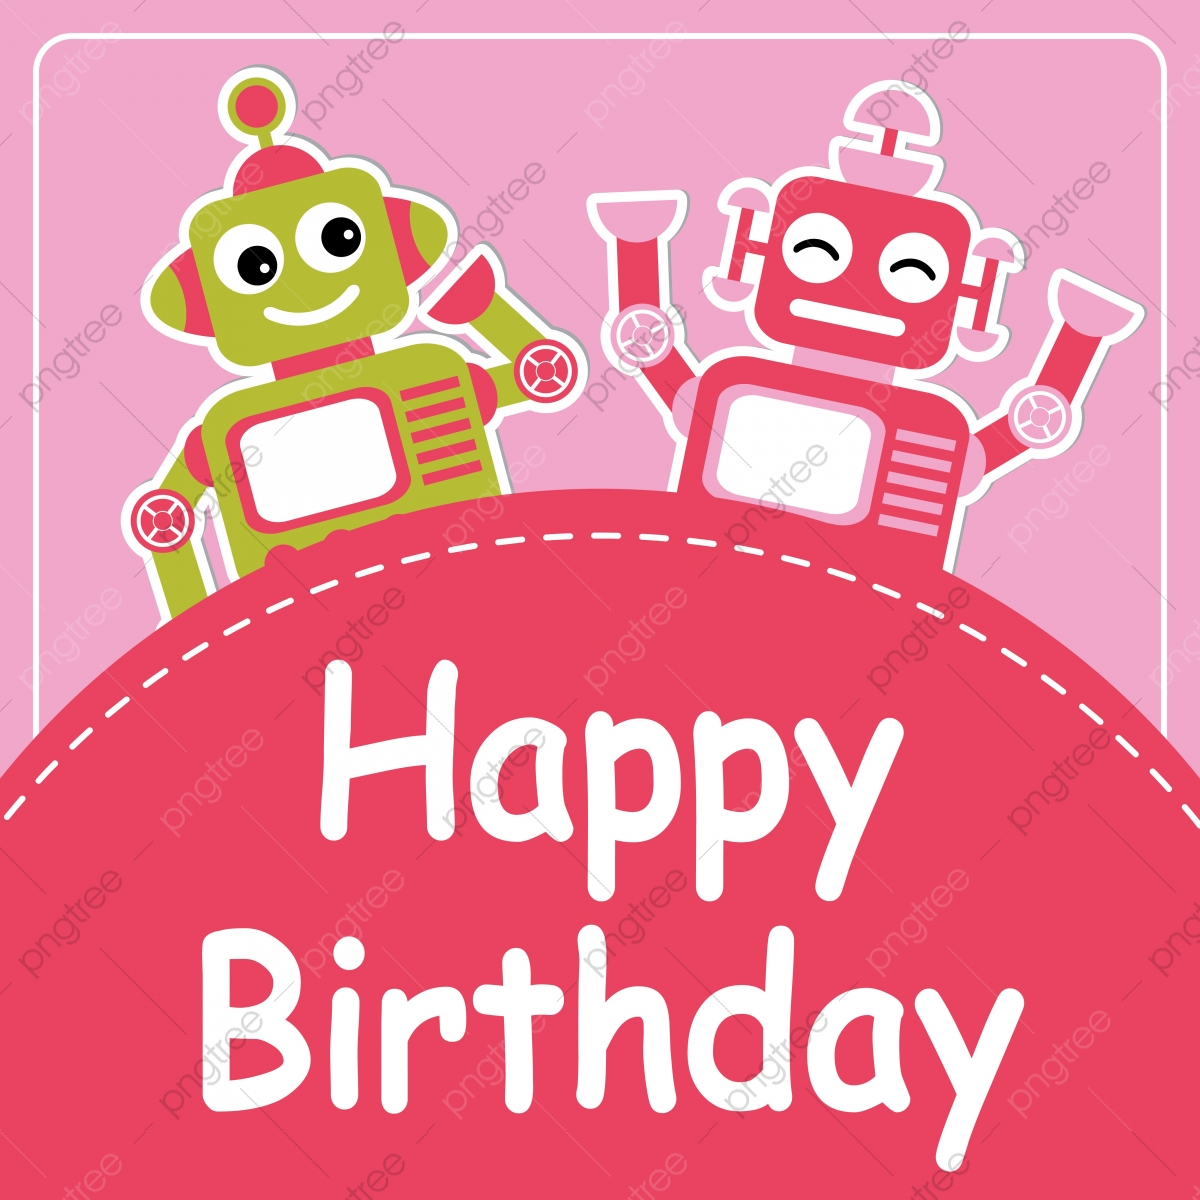 Cute Two Robots On Pink Background Cartoon Illustration For